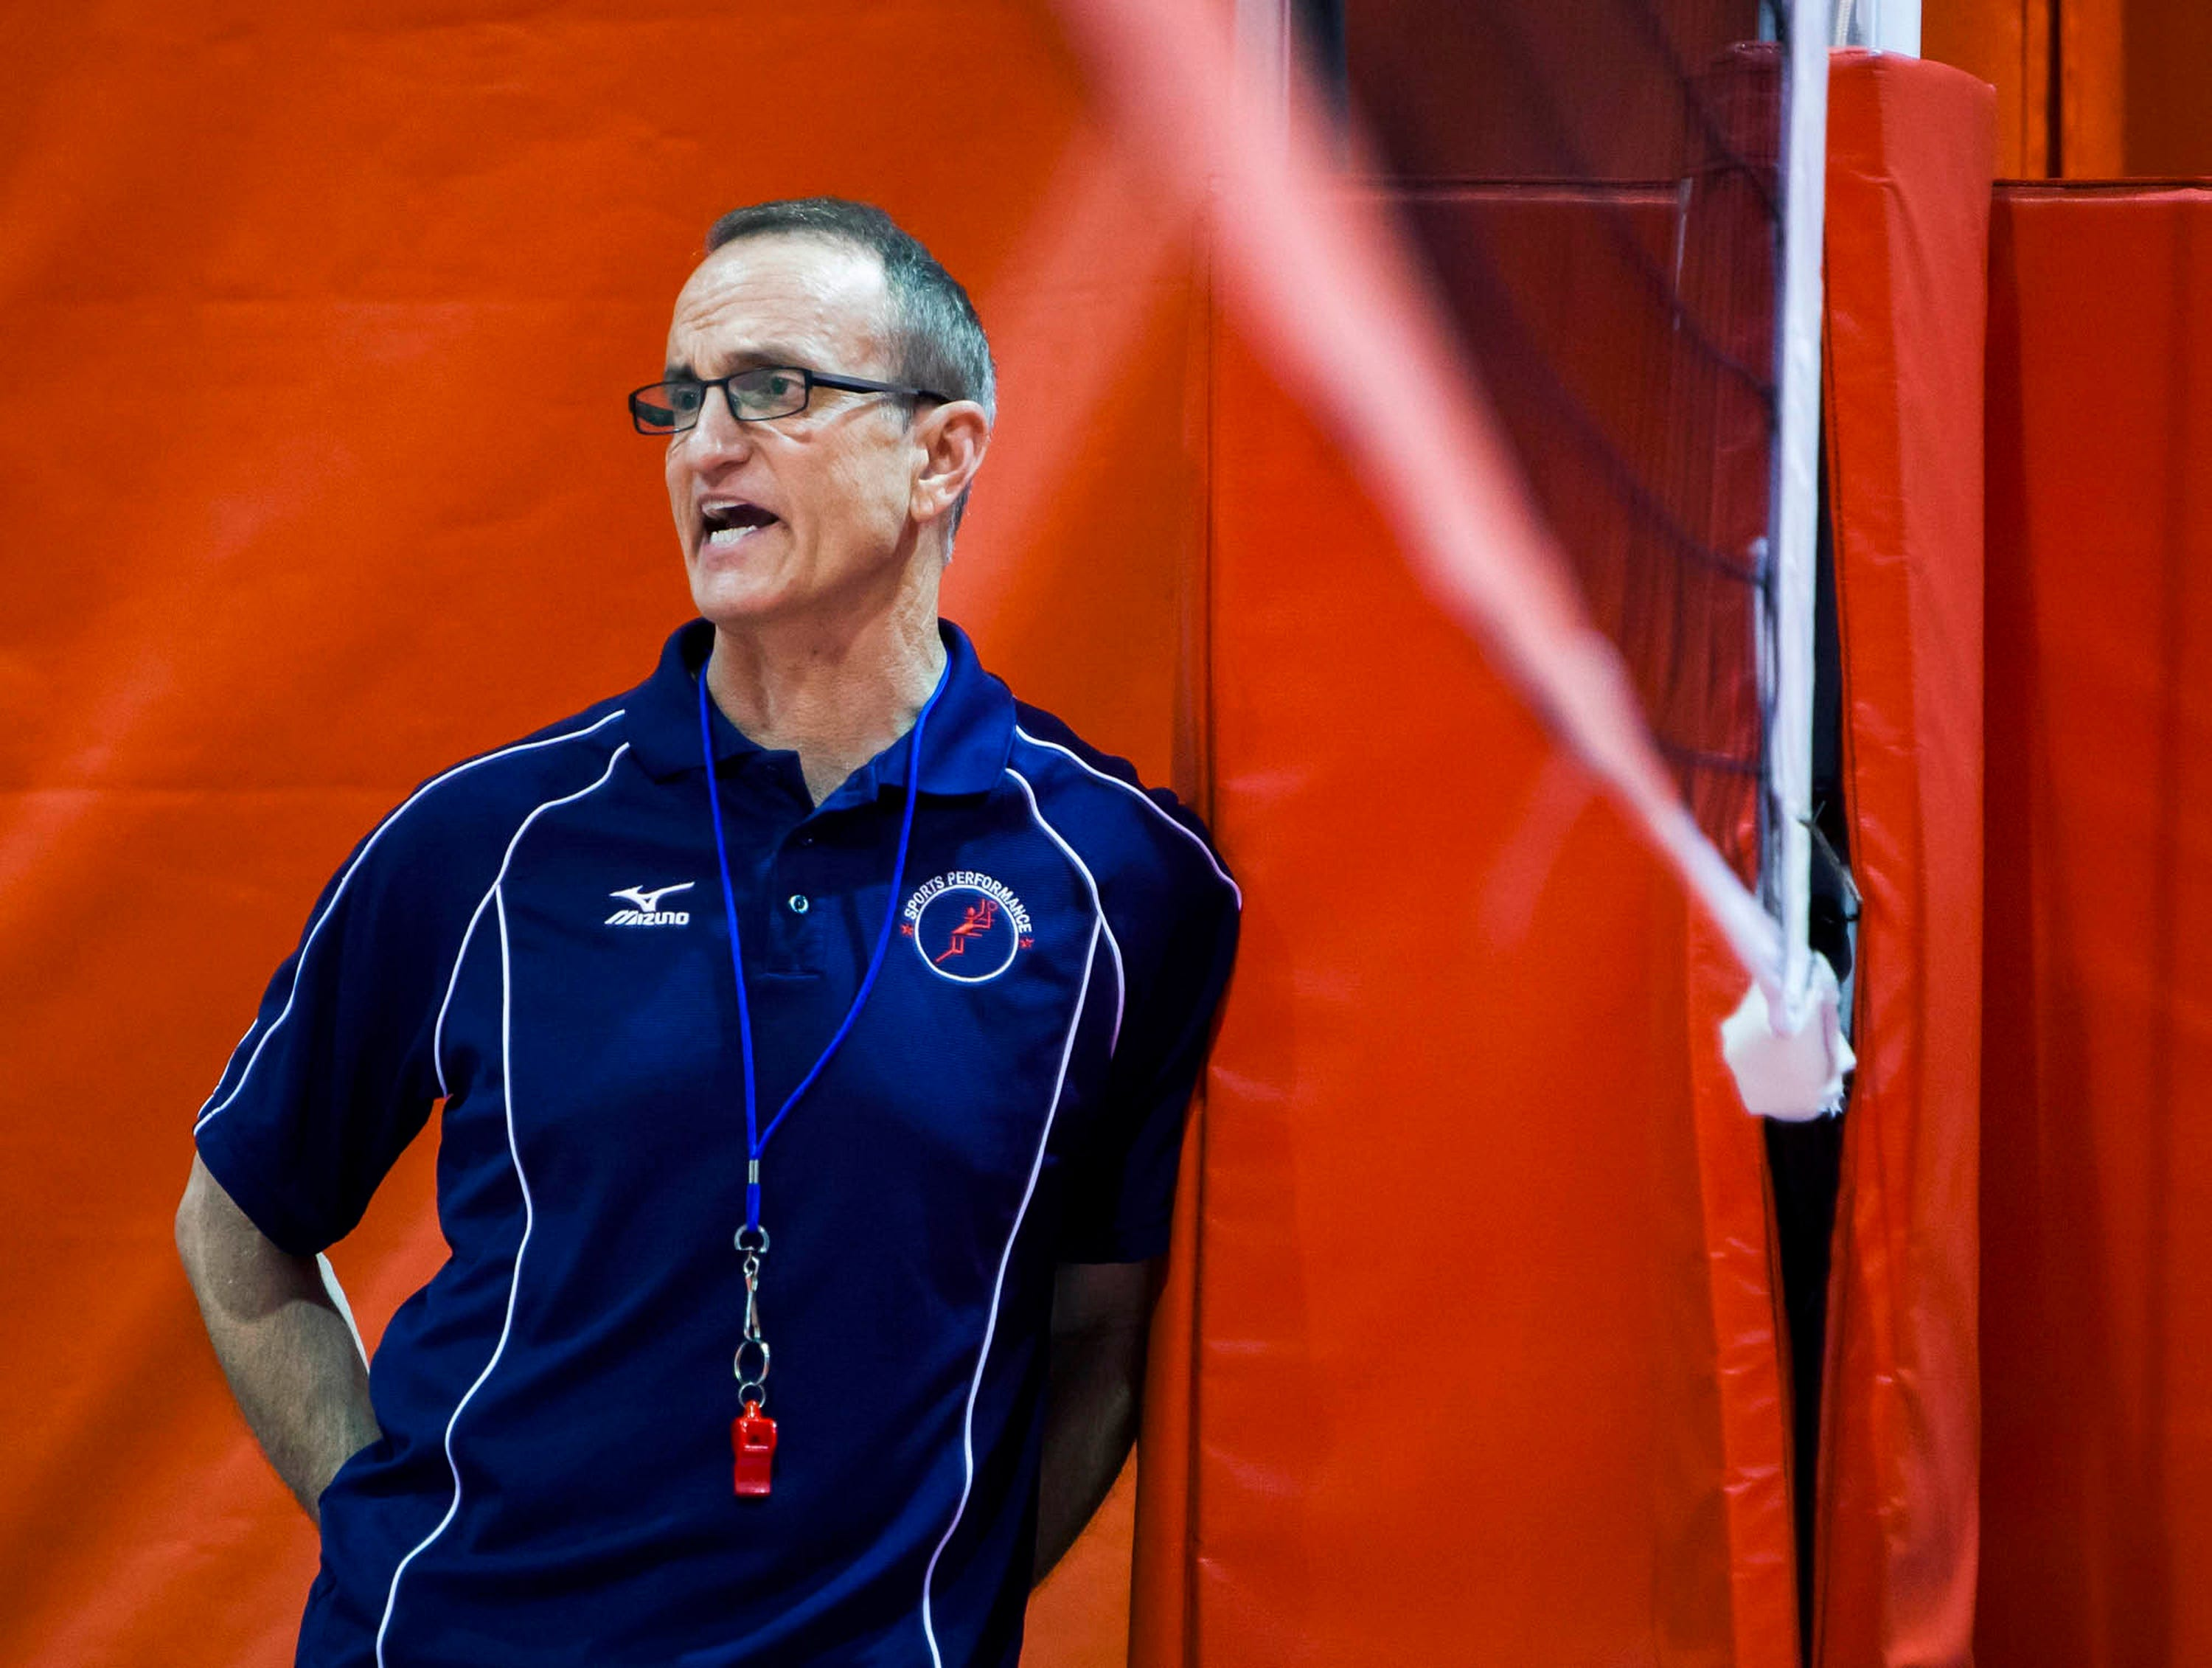 Longtime volleyball coach Rick Butler watches a scrimmage at a camp in Lincoln, Neb., in 2014.